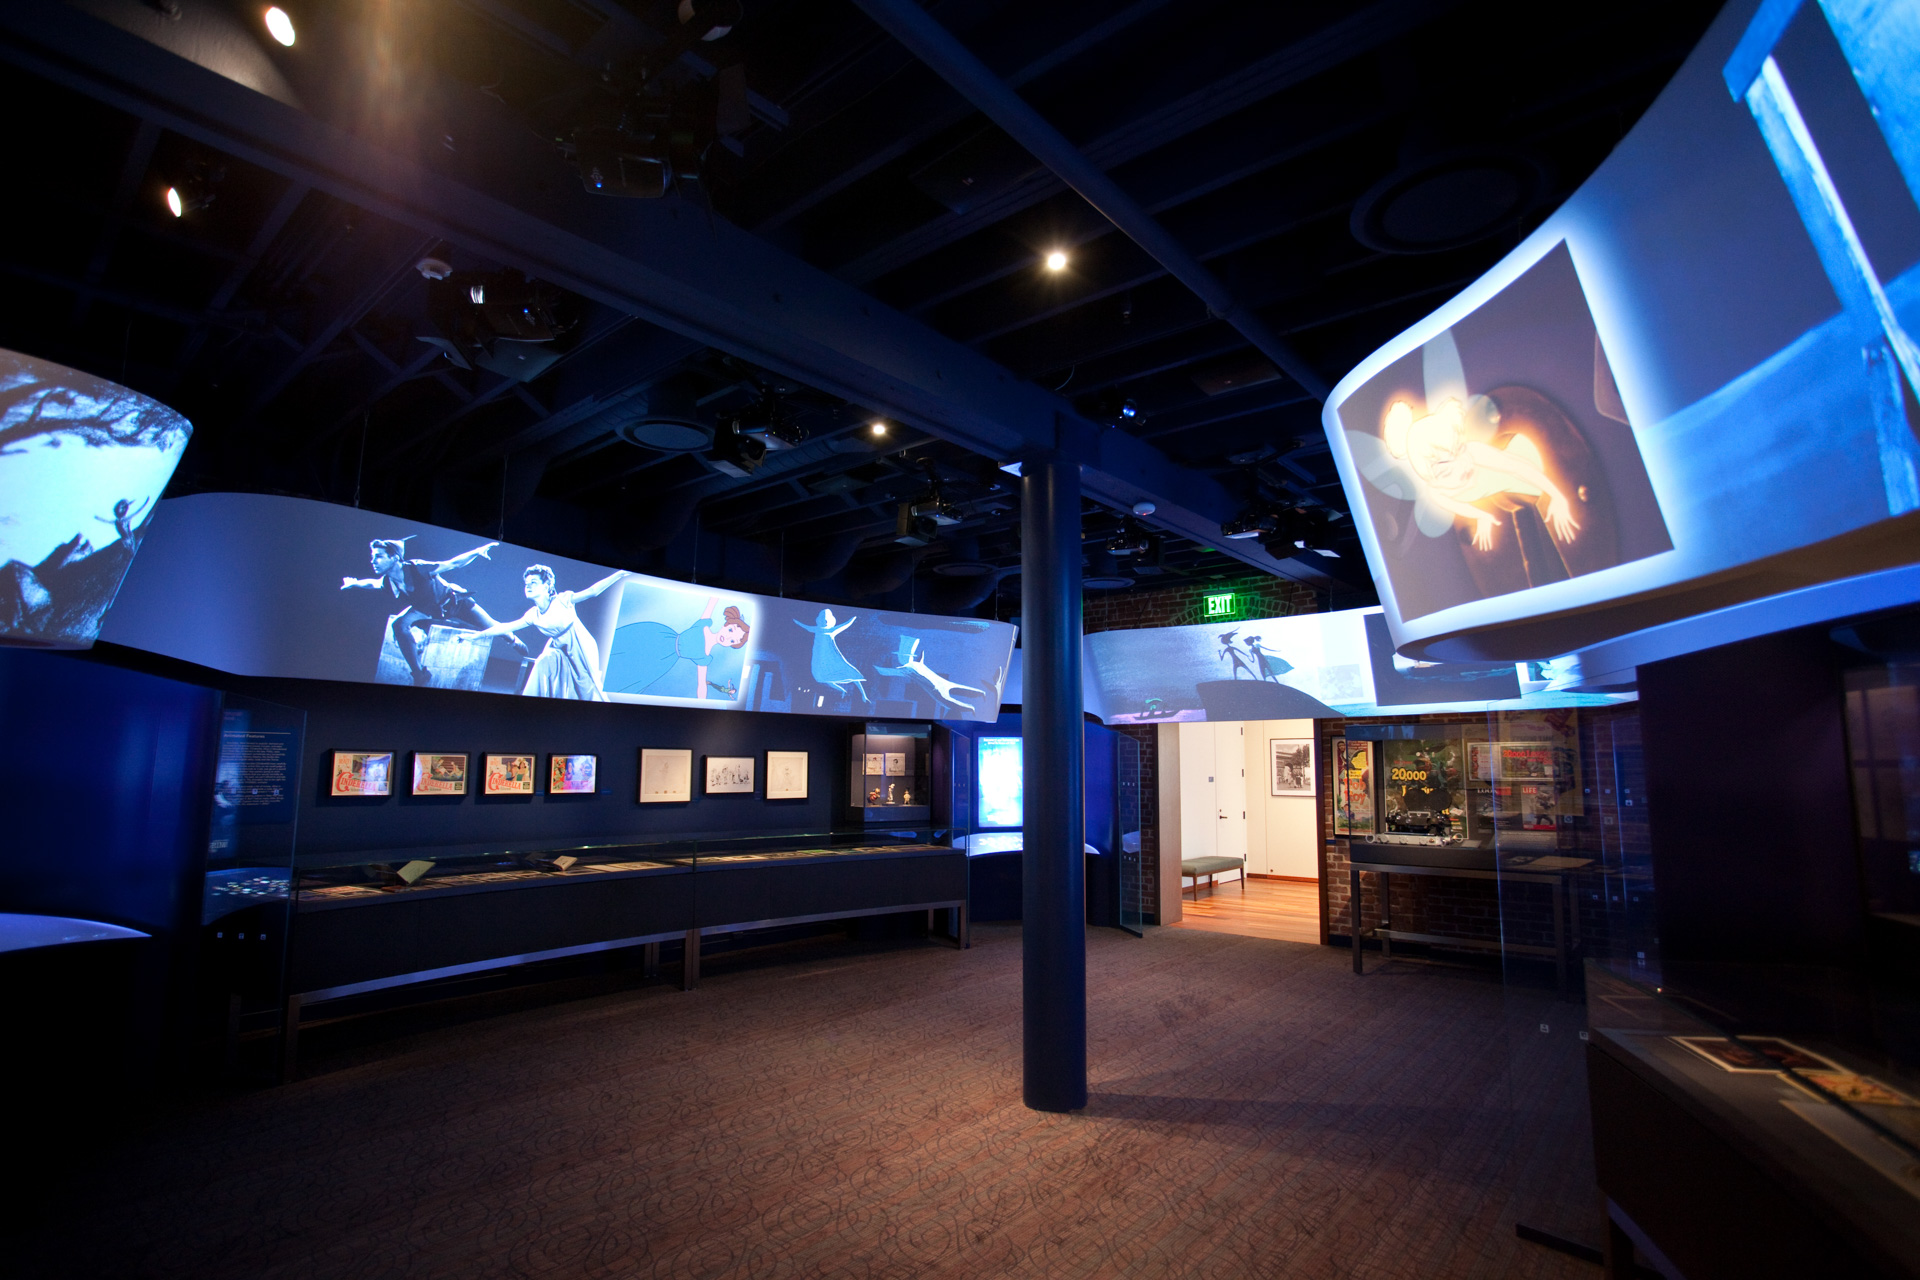 Video Ribbon at Walt Disney Family Museum, which is a nice immersive space. Exhibit Design by Rockwell Group Architects.  Media production by Batwin and Robin.  AV Integration and control by BBI Engineering, Inc. Photo credit BBI Engineering, Inc | AVIXA